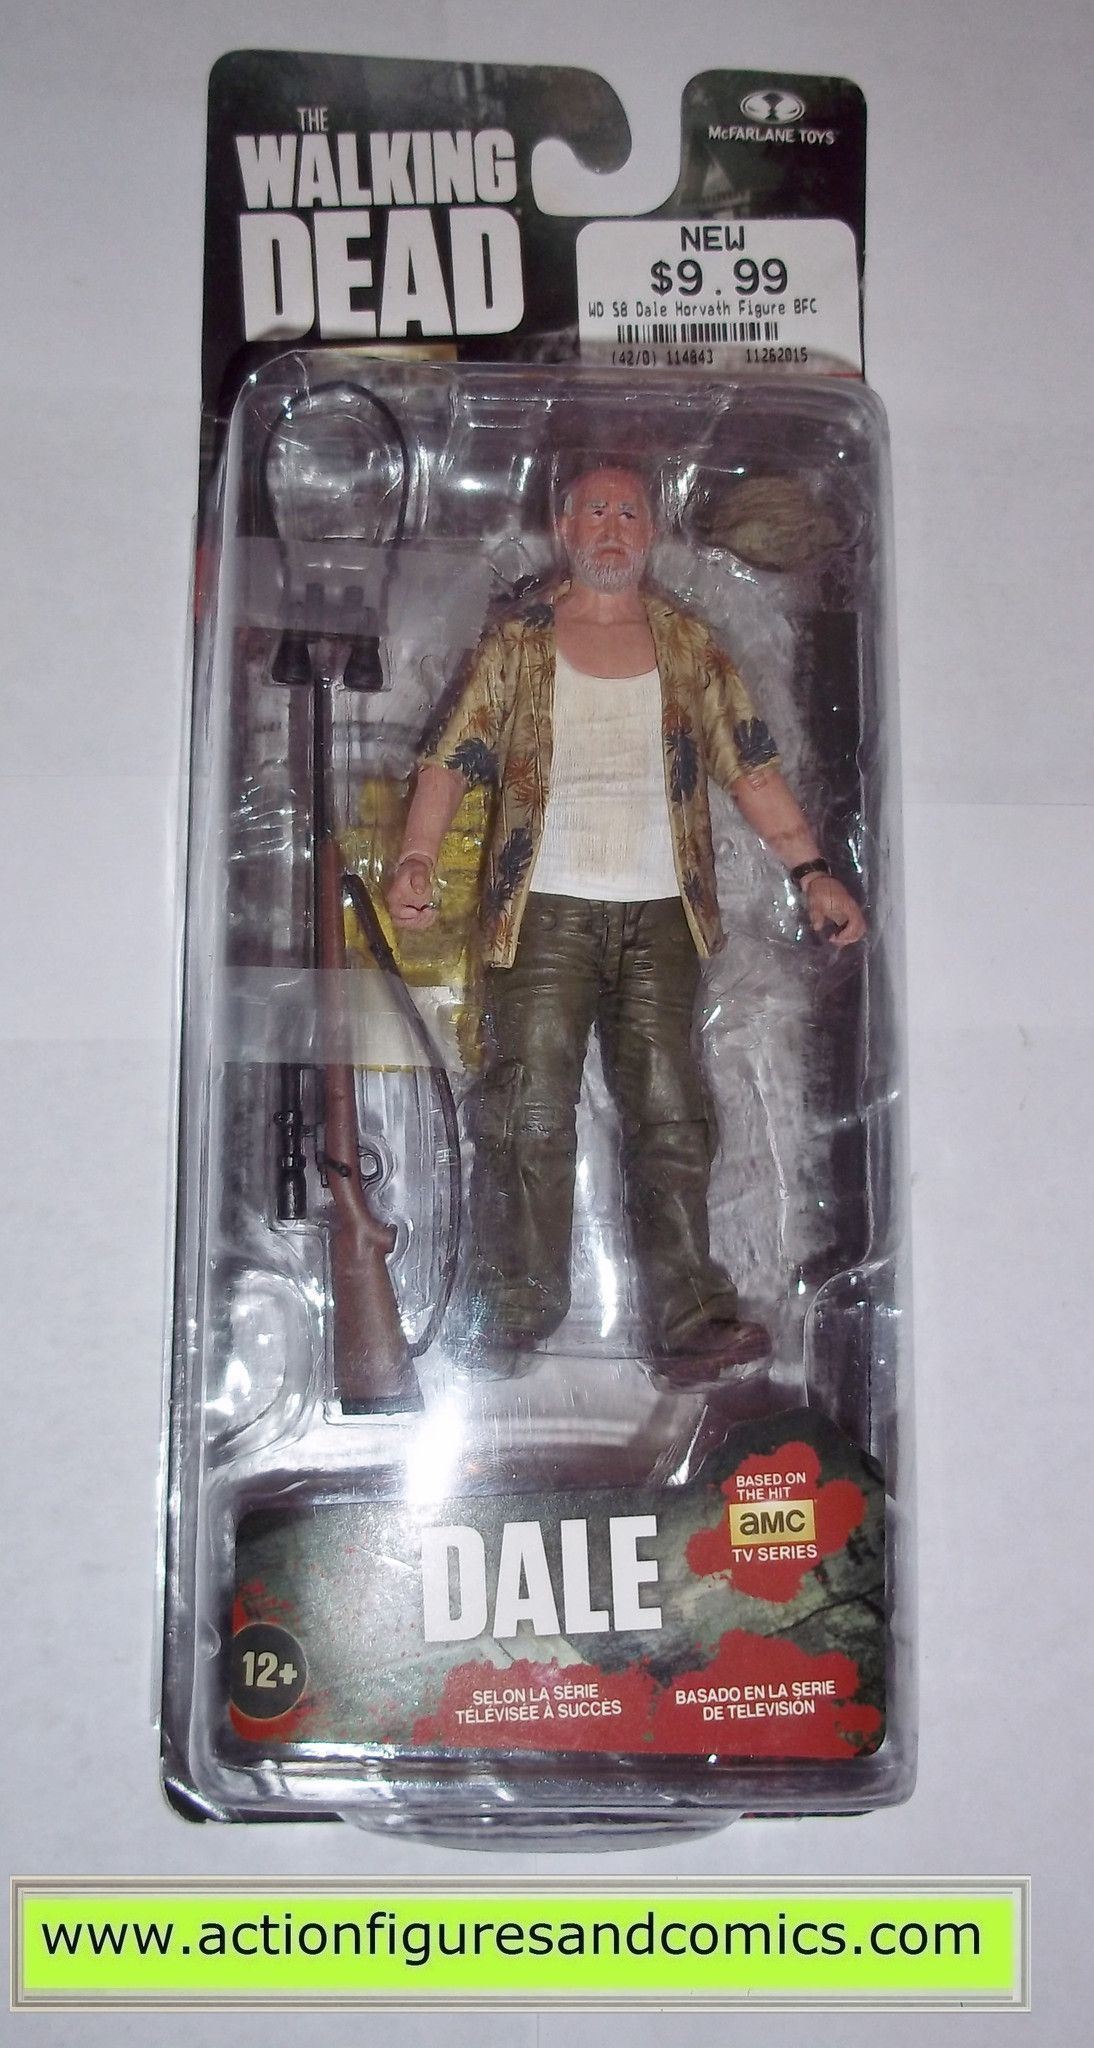 3ada1bb2534cffe19a3c8fa49dc60f58 the walking dead dale tv series 8 mcfarlane toys action figures